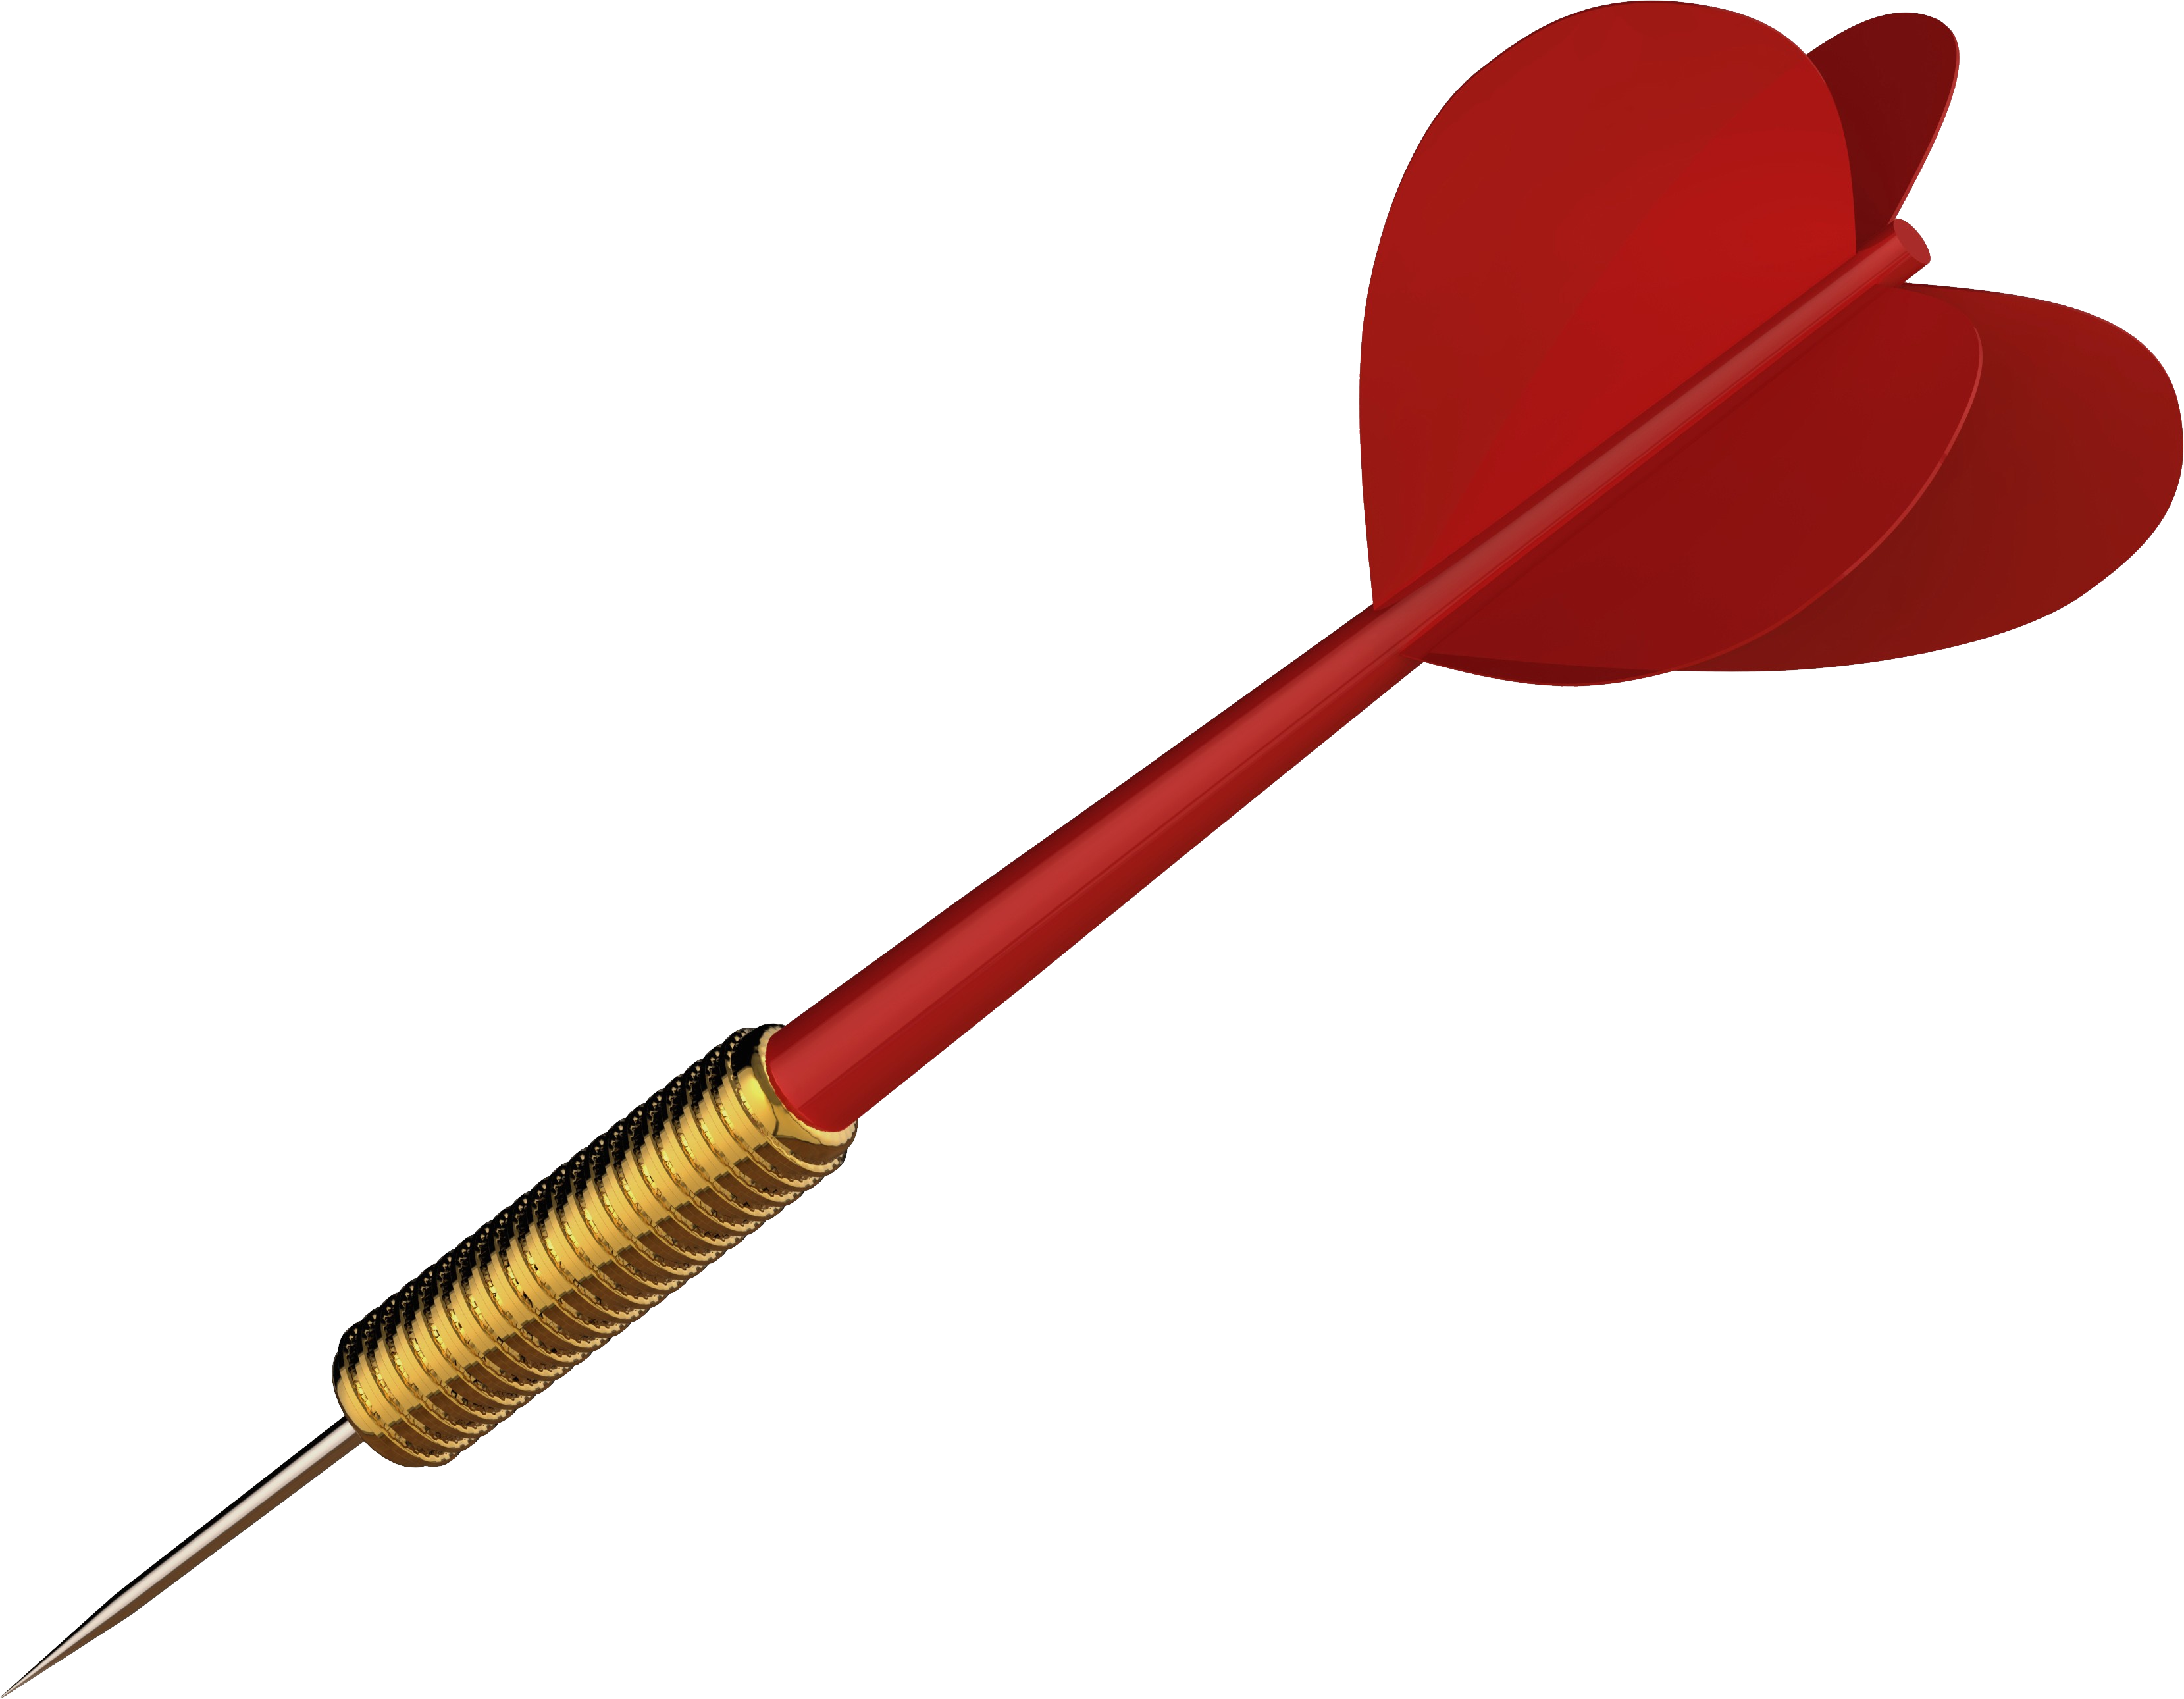 Dart clipart red. Darts png web icons